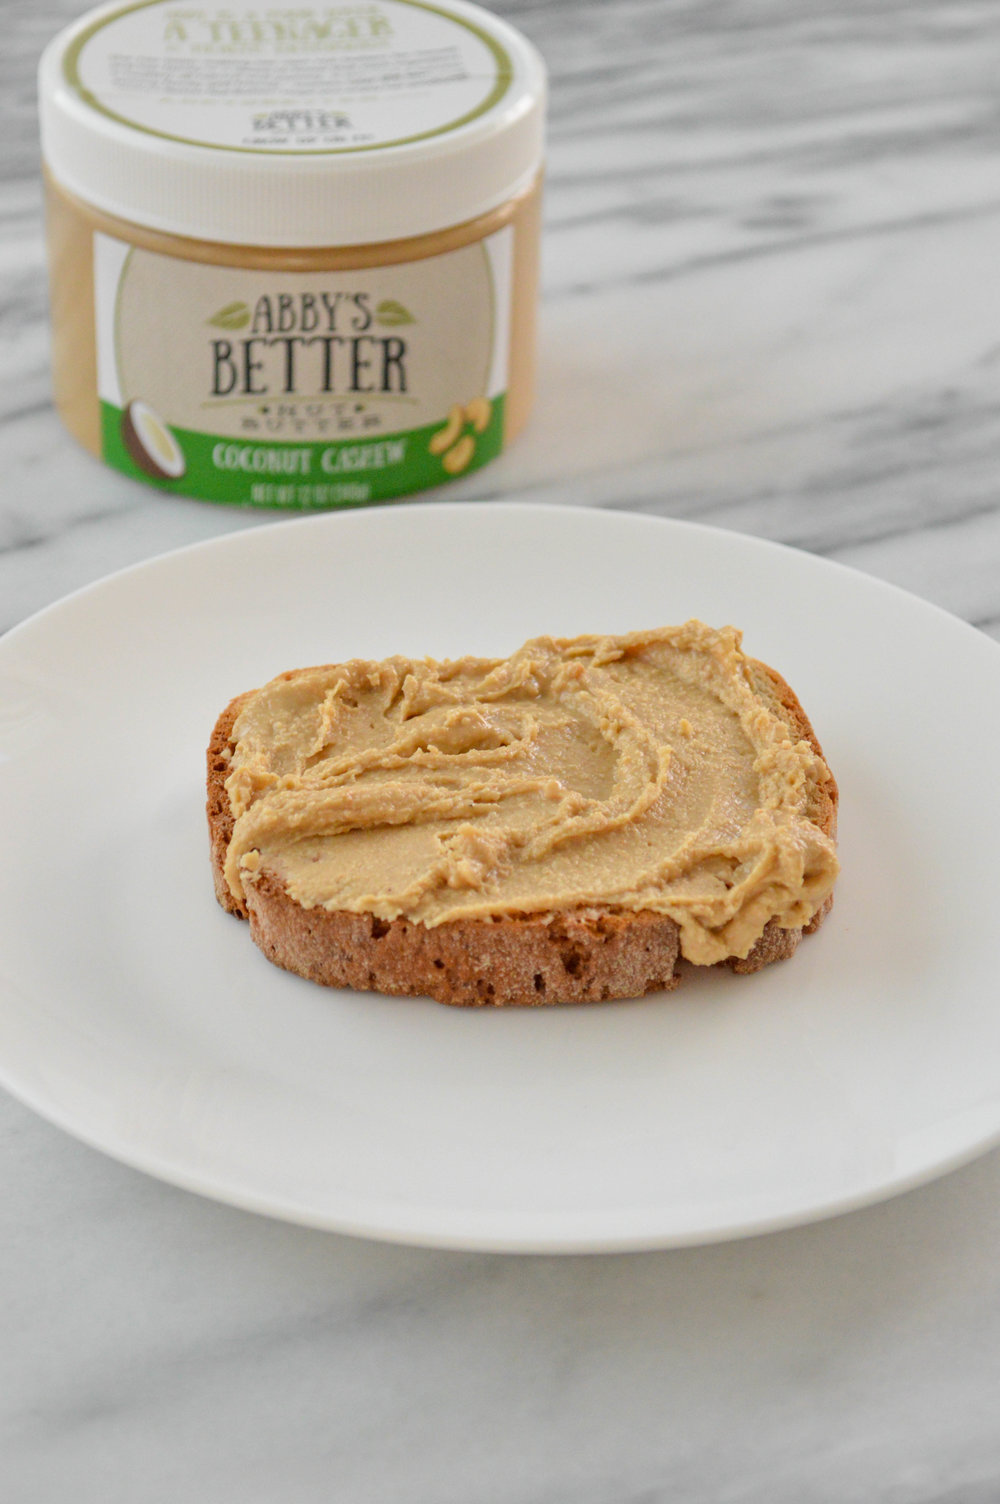 Abbys-Better-Nut-Butter-Lauren-Schwaiger-Healthy-Lifestyle-Blog.jpg